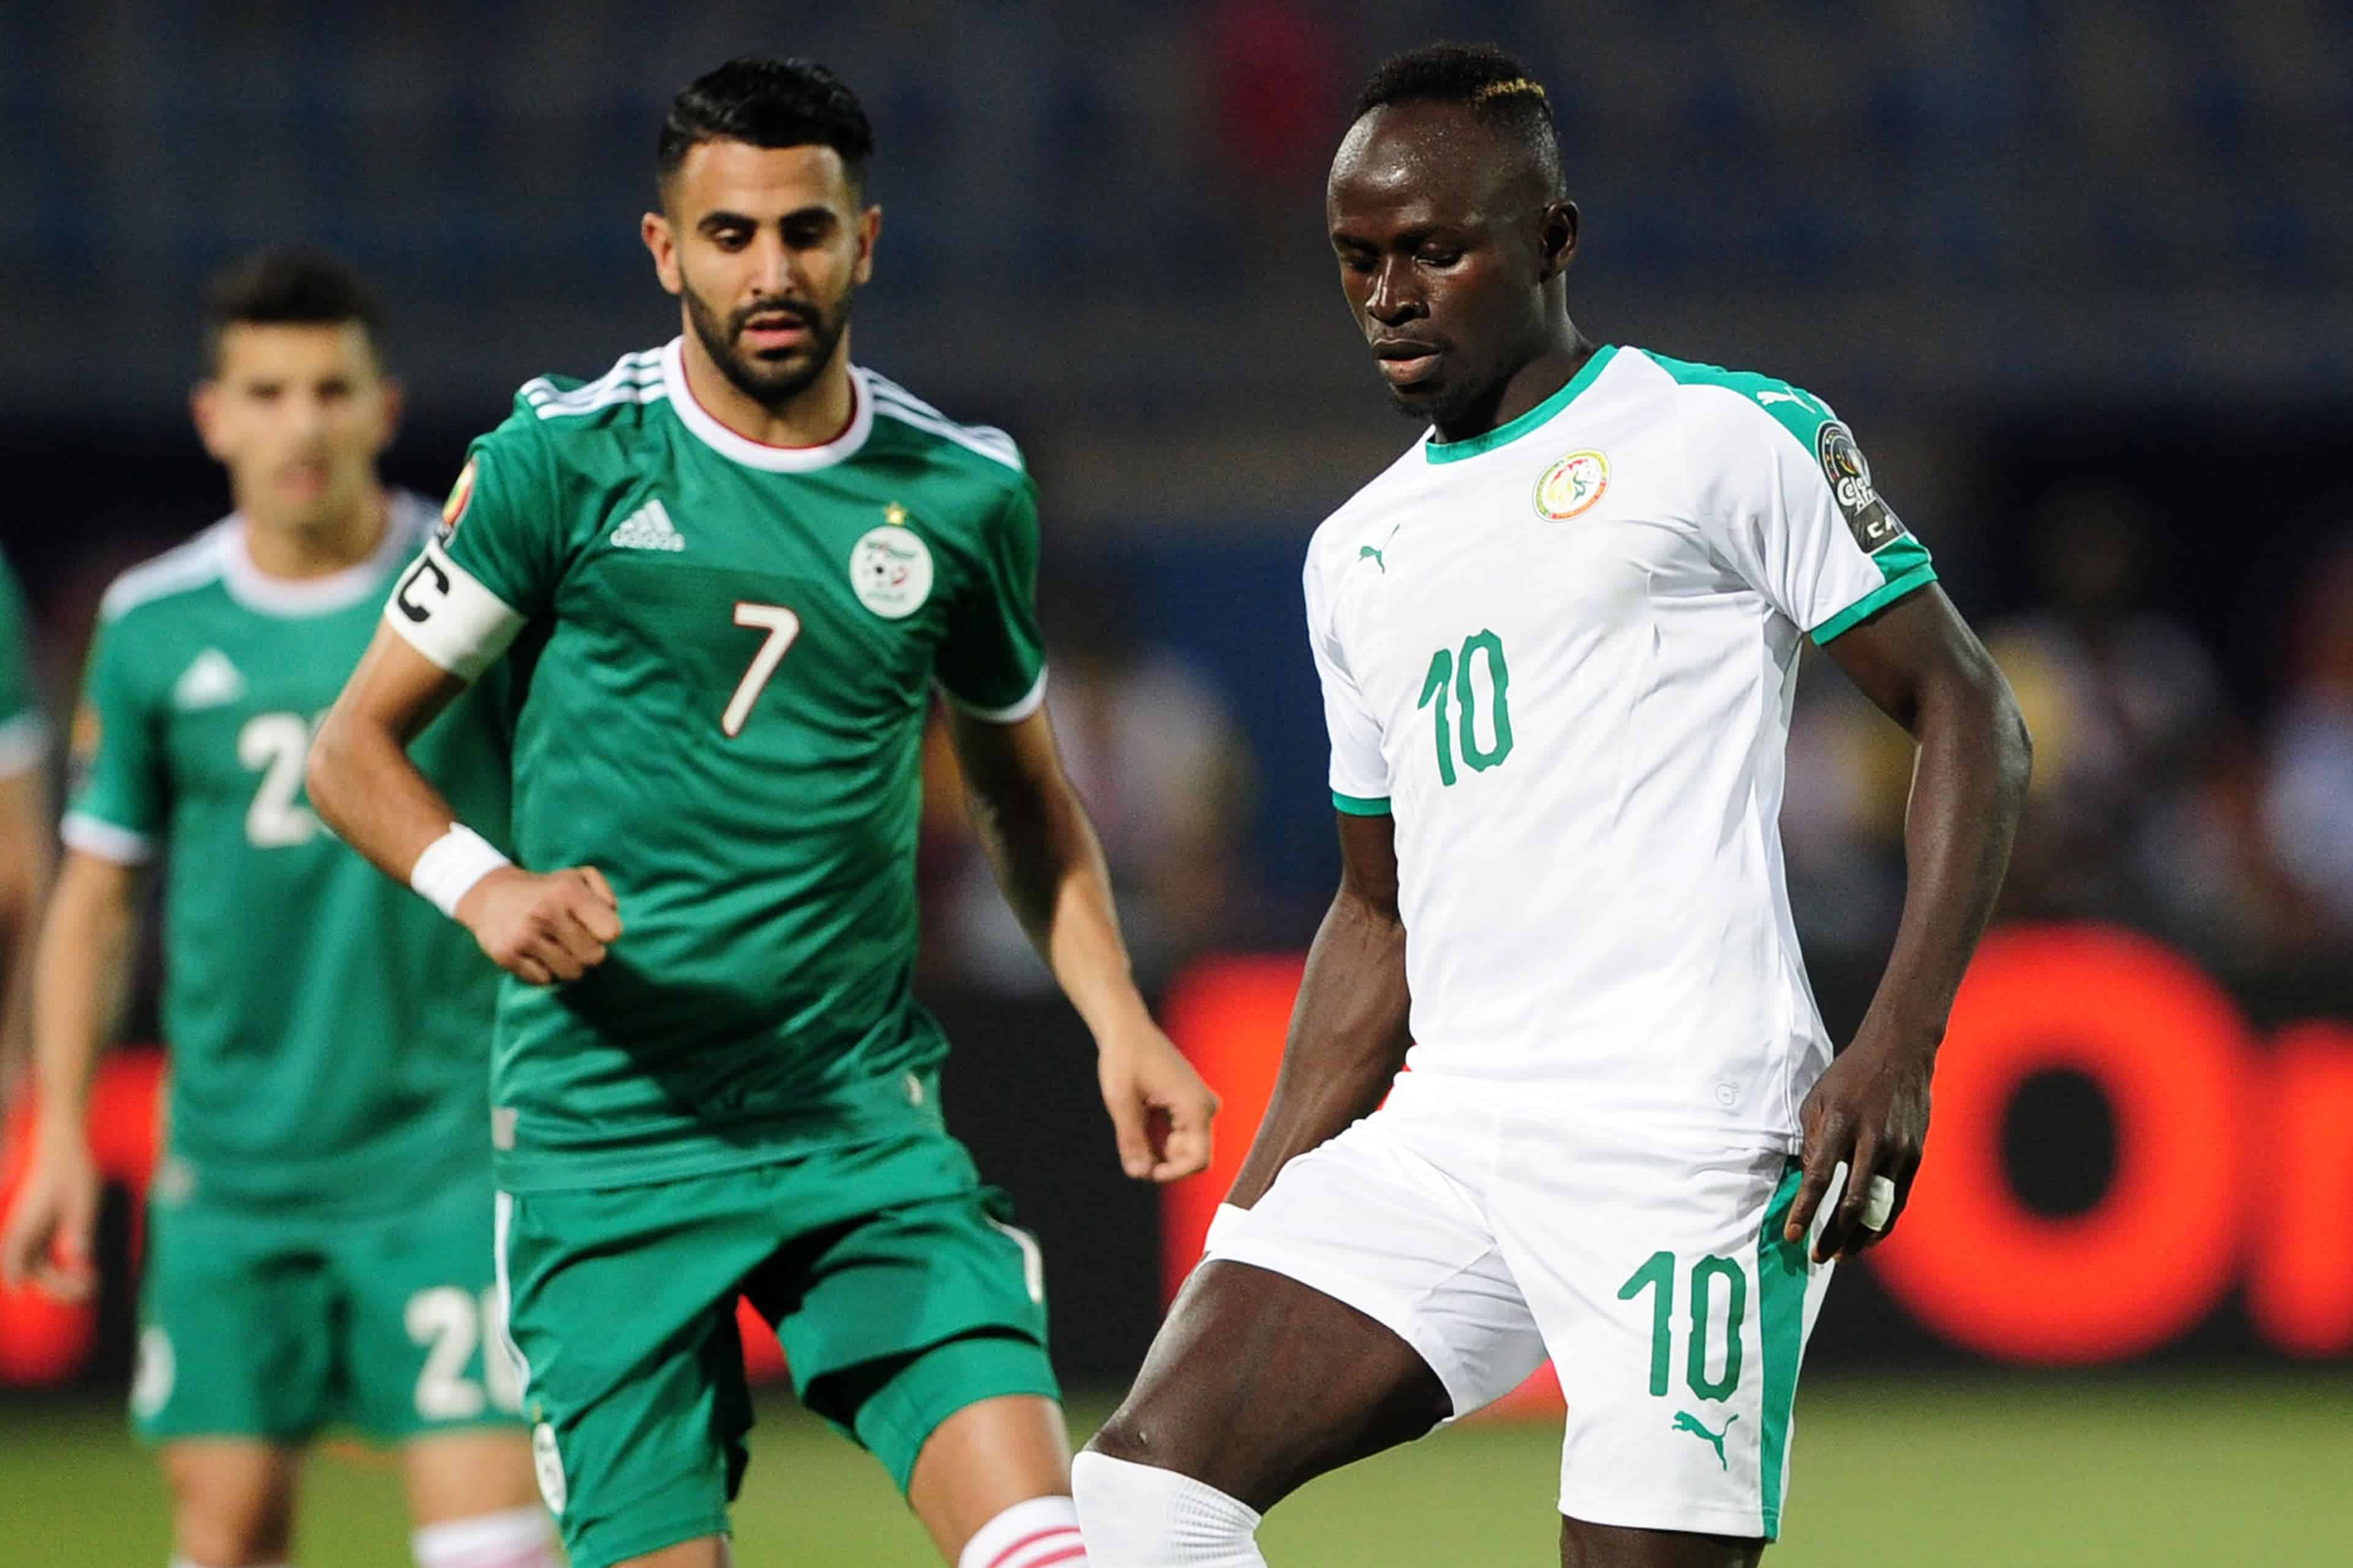 Algeria defeated Senegal 1-0 when the two sides met in the groups.